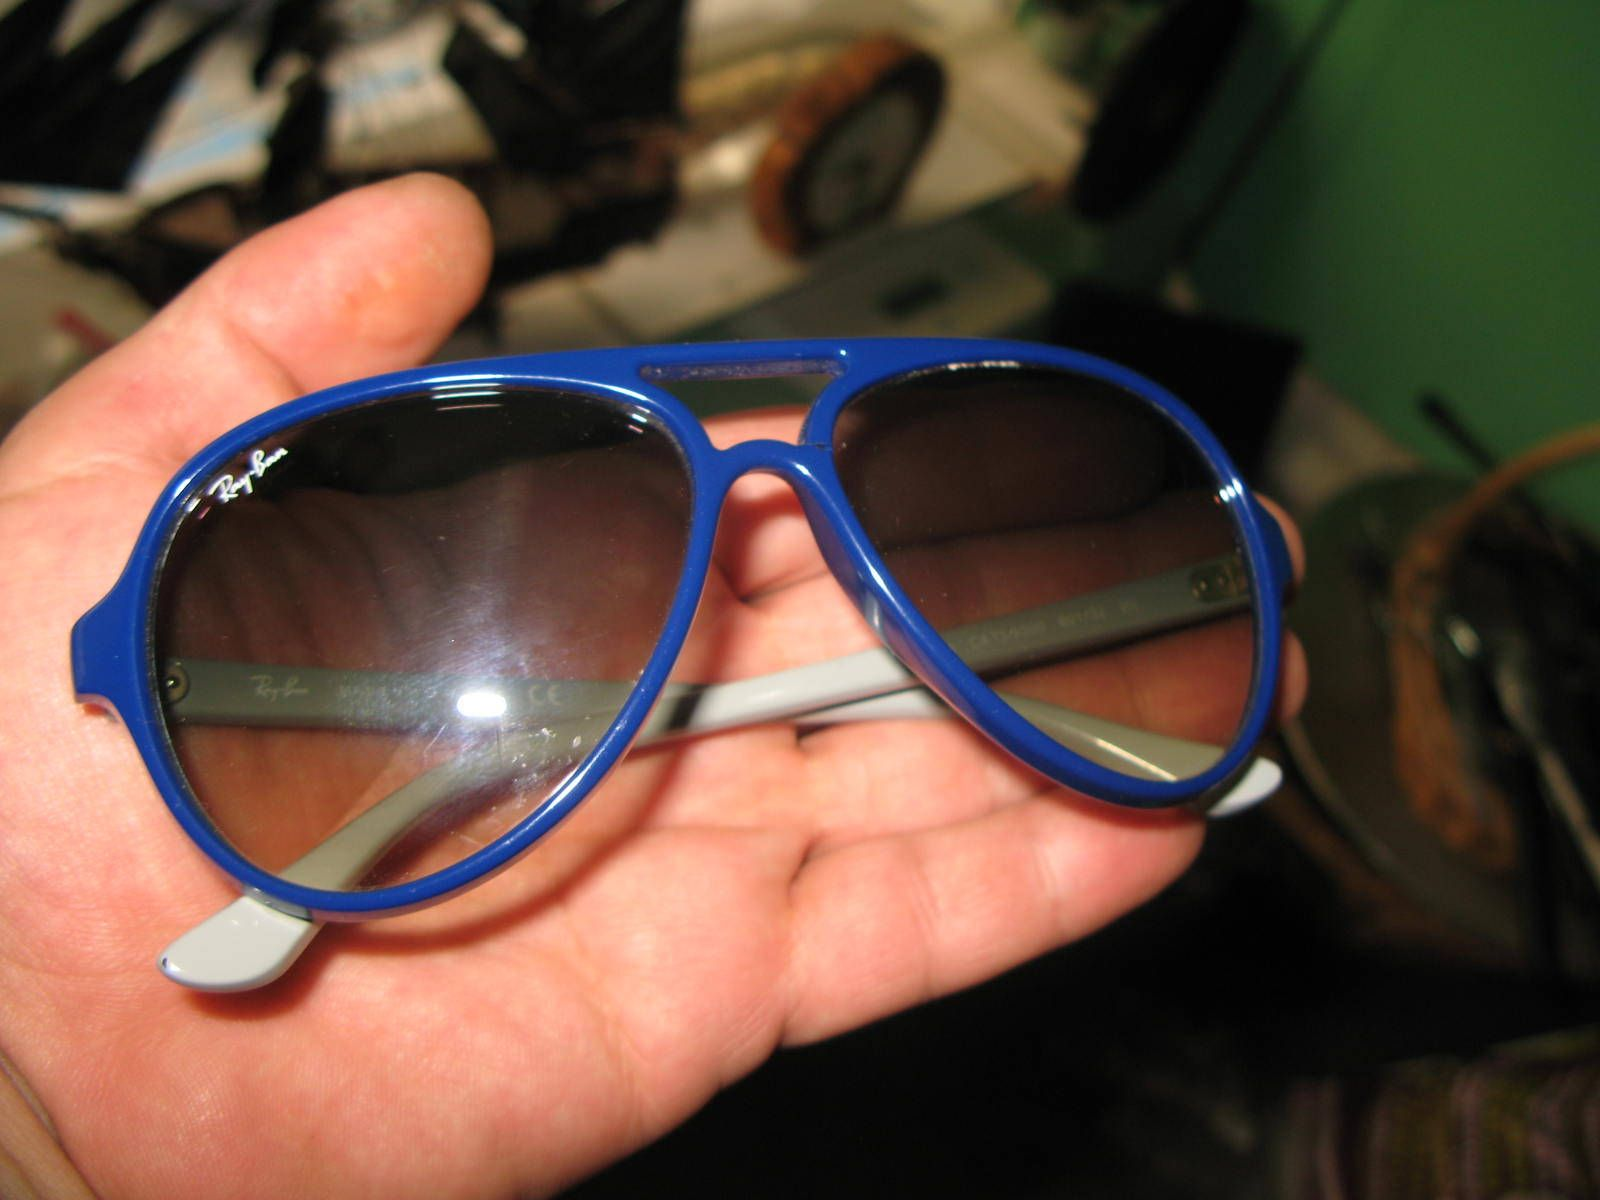 1e51295621503 35g RAYBAN SUNGLASSES rare blue RB4125 CATS 5000 801 32 2N made in Italy by  spyrinex06 on Etsy